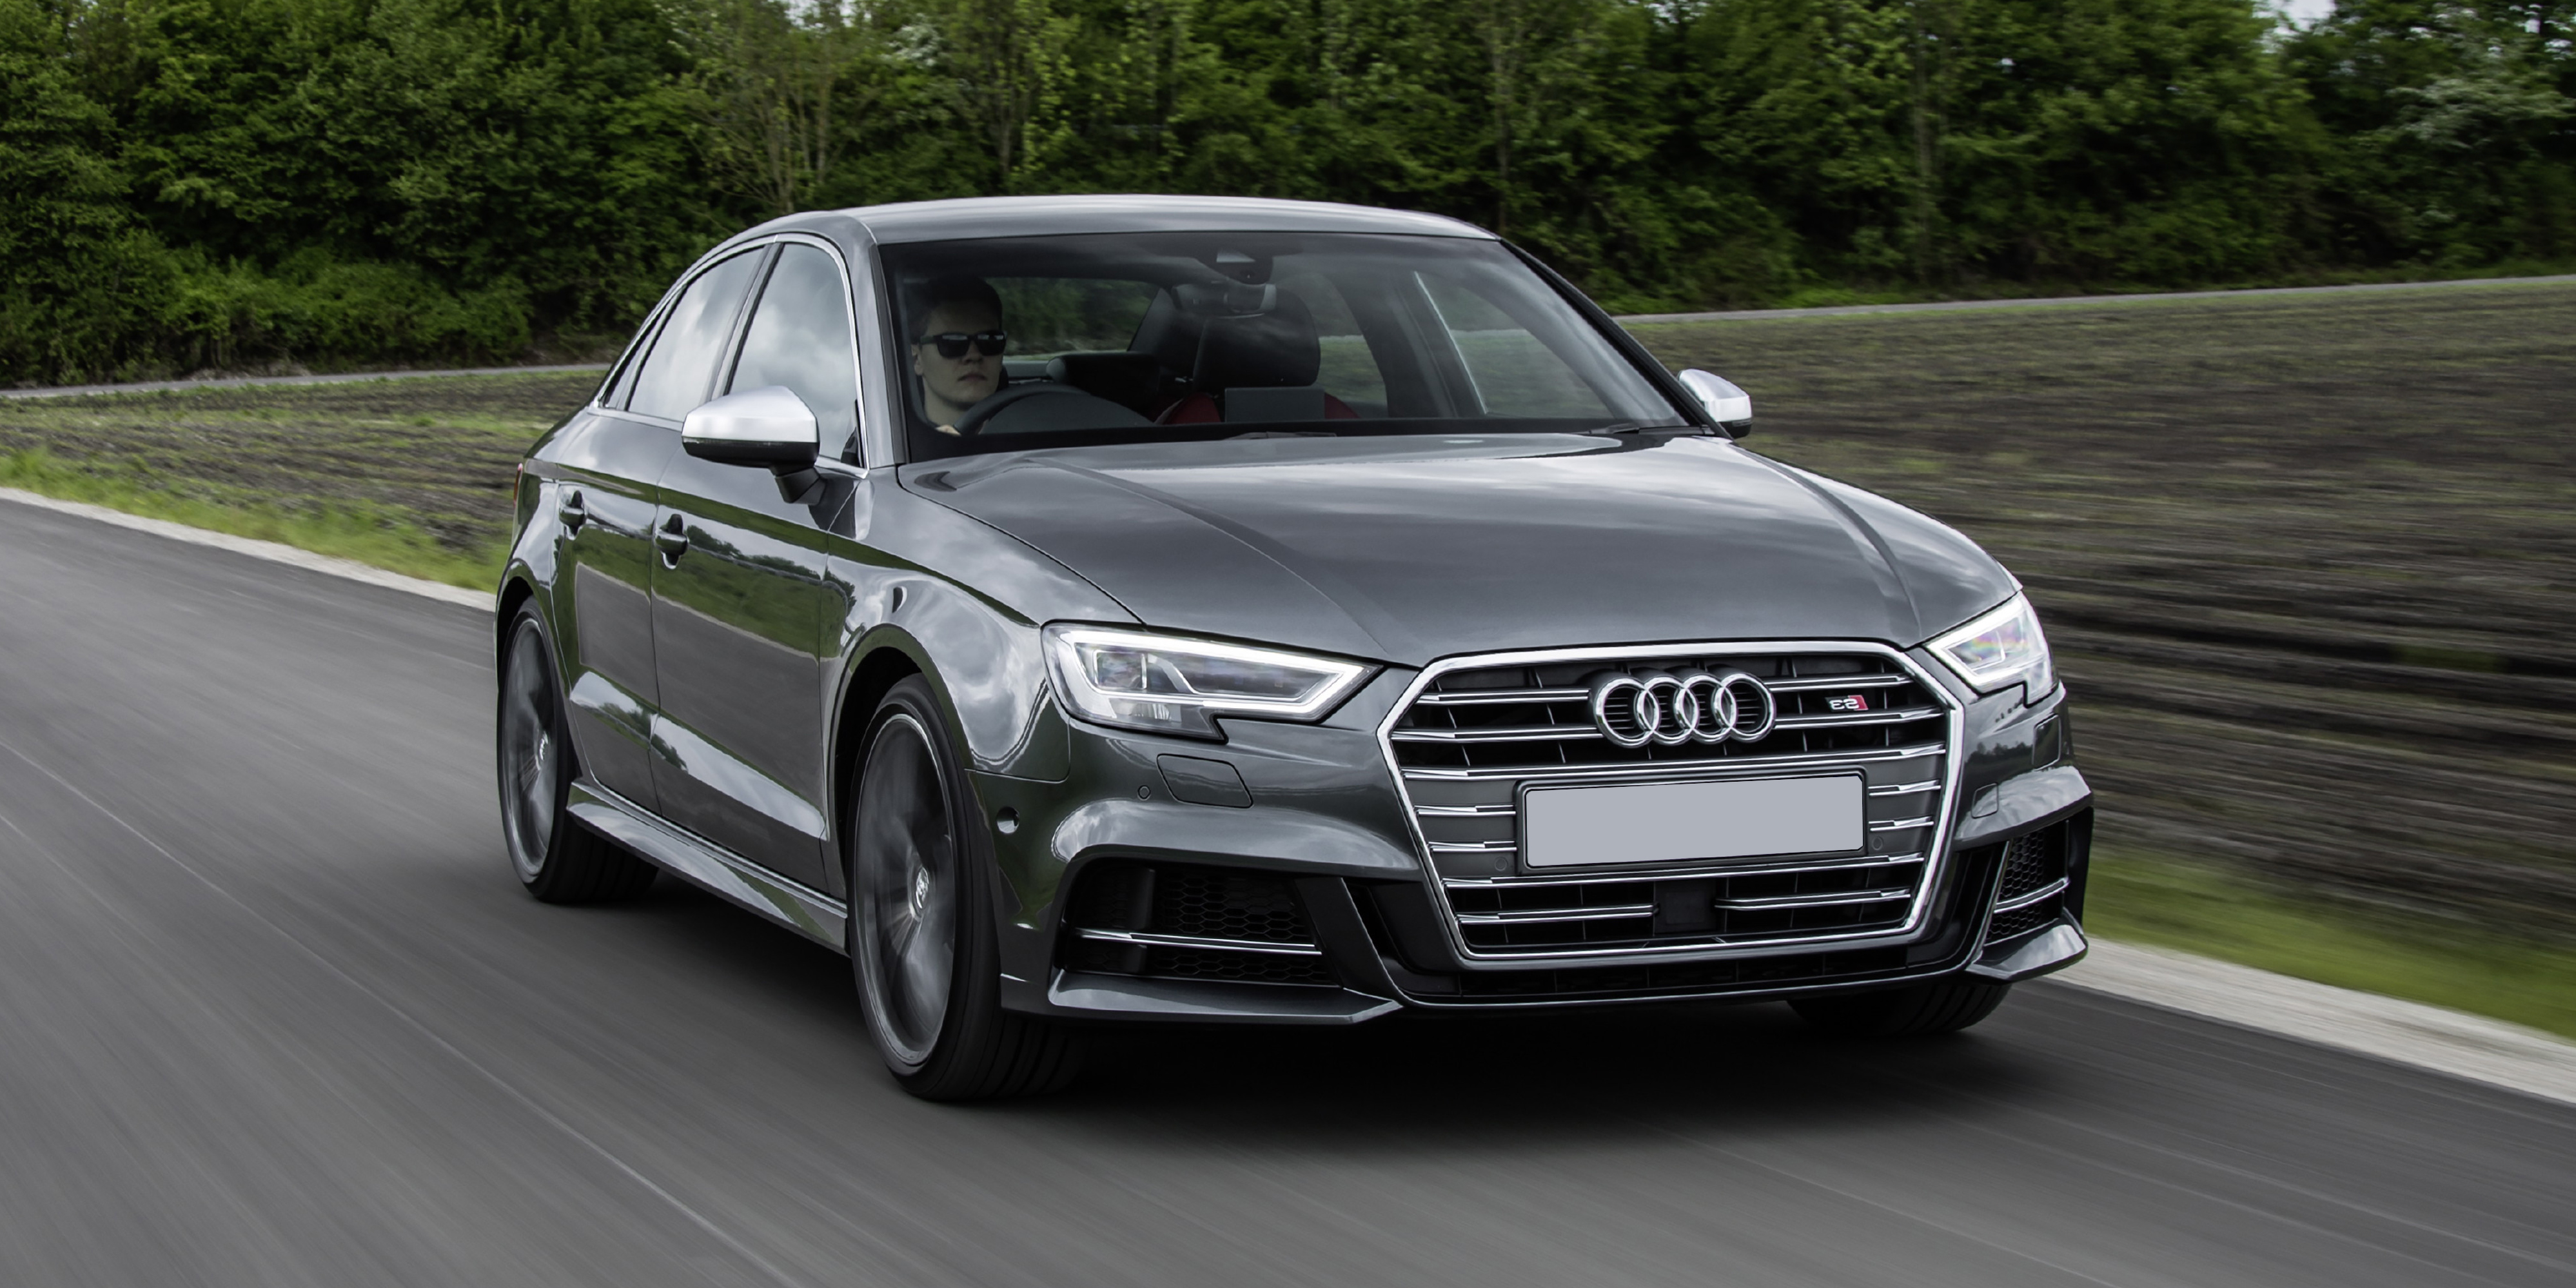 Image Result For Audi A Carwow